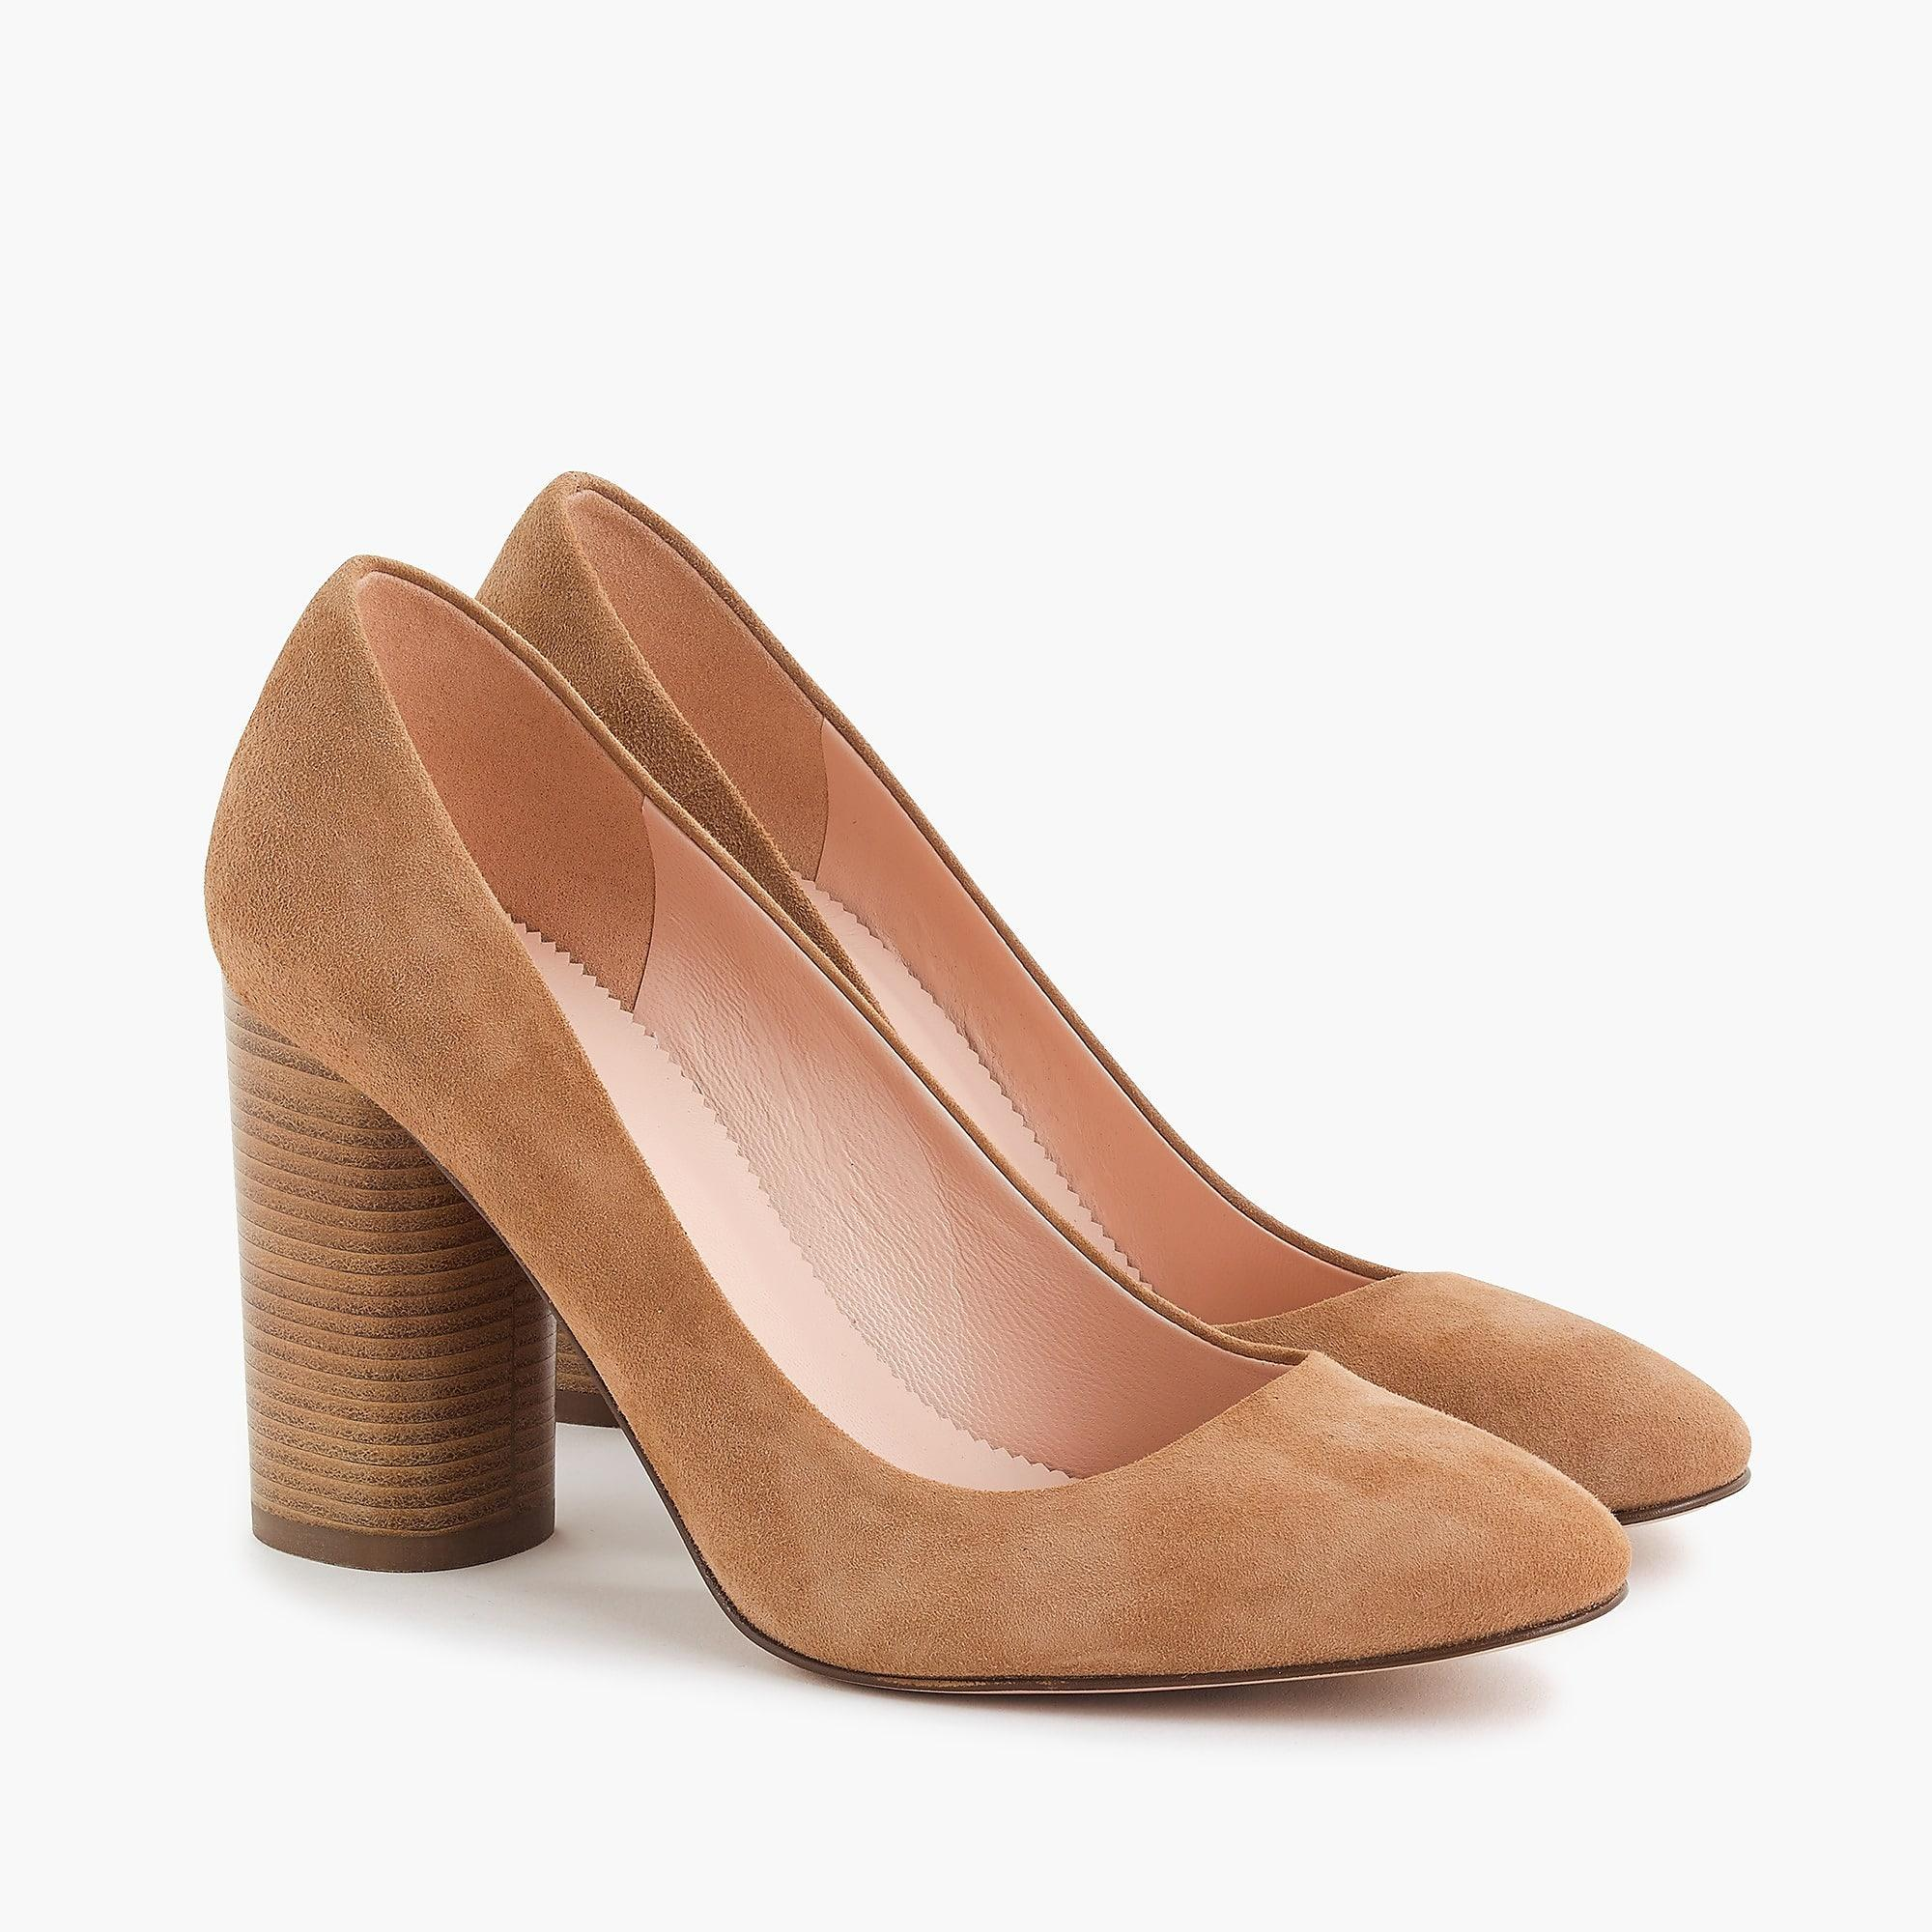 baad274e691 Lyst - J.Crew Stacked-heel Pumps In Suede in Brown